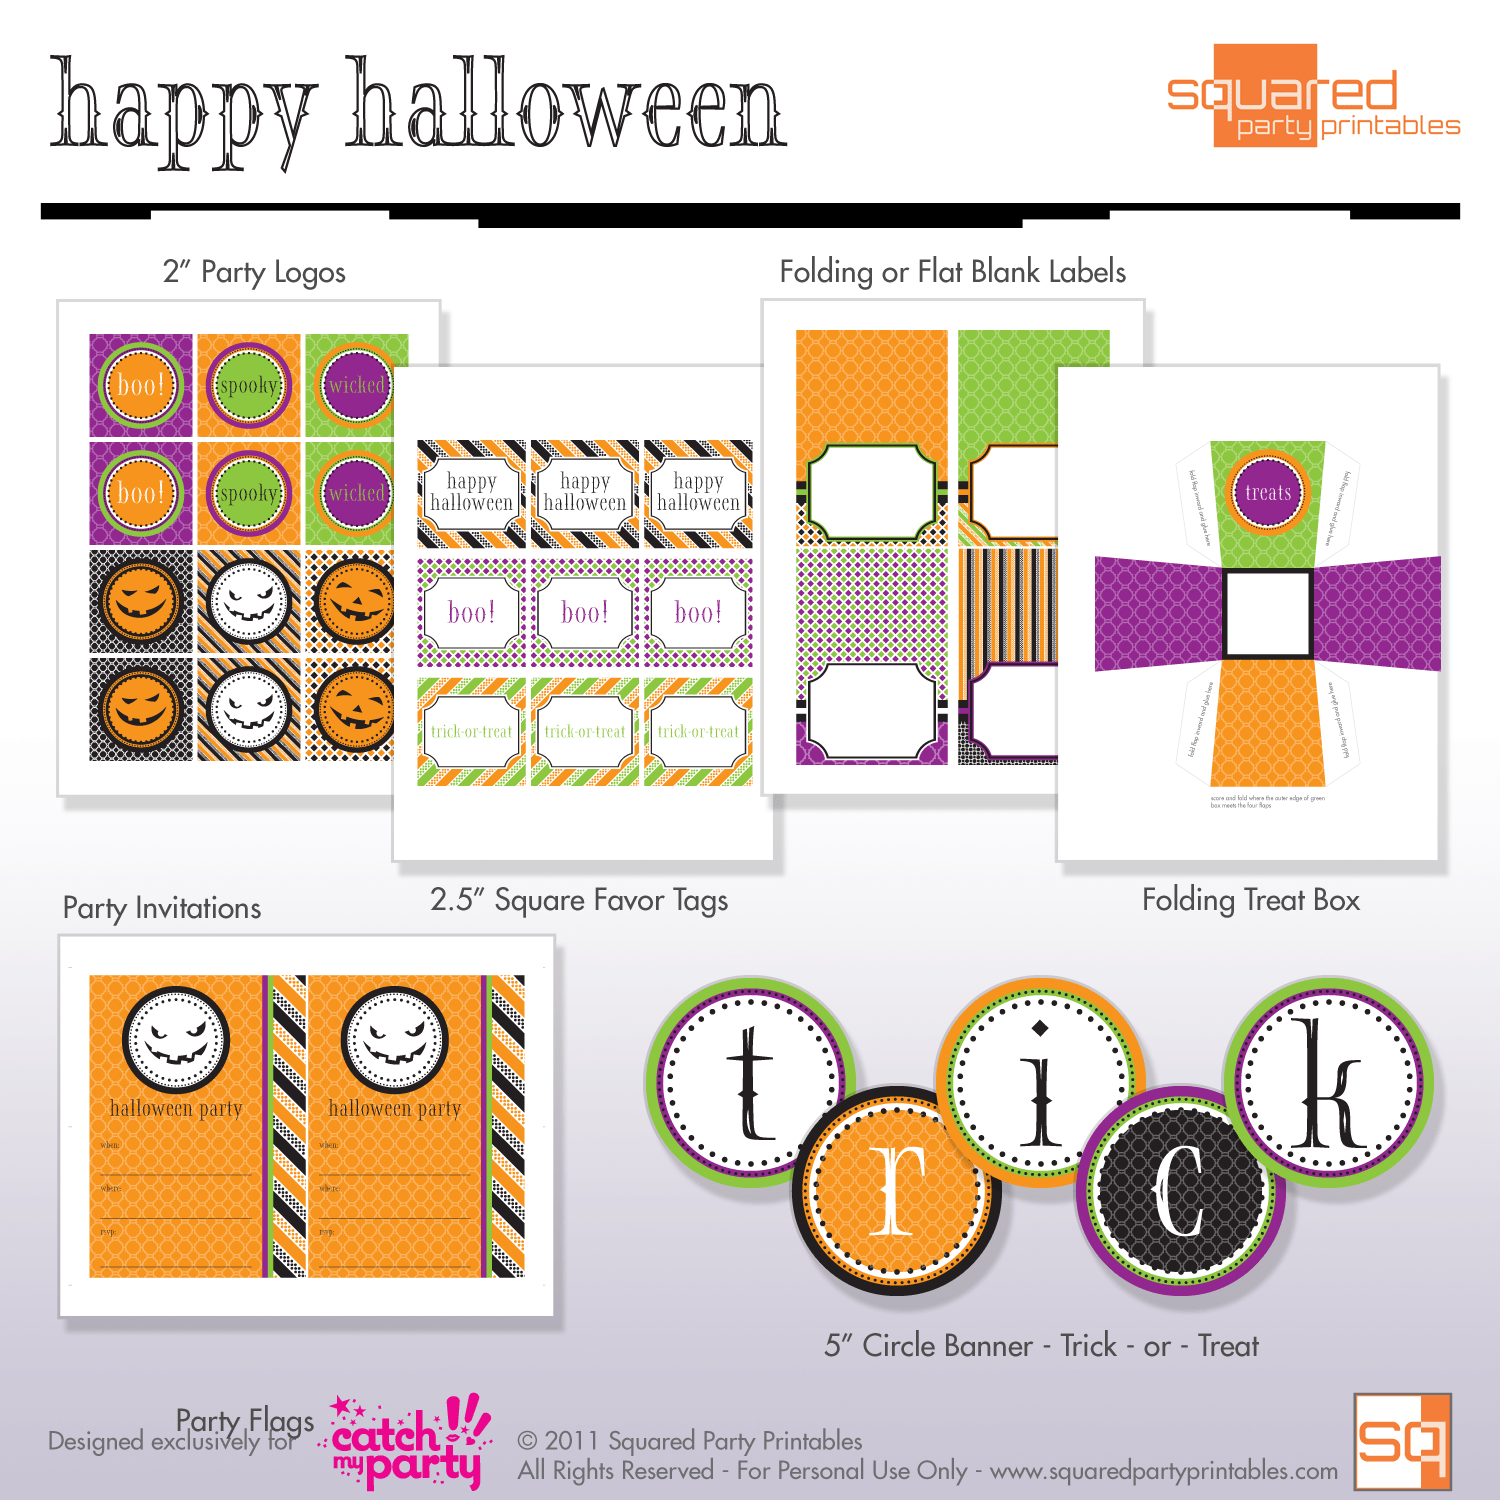 Free Halloween Party Printables From Squared Party Printables